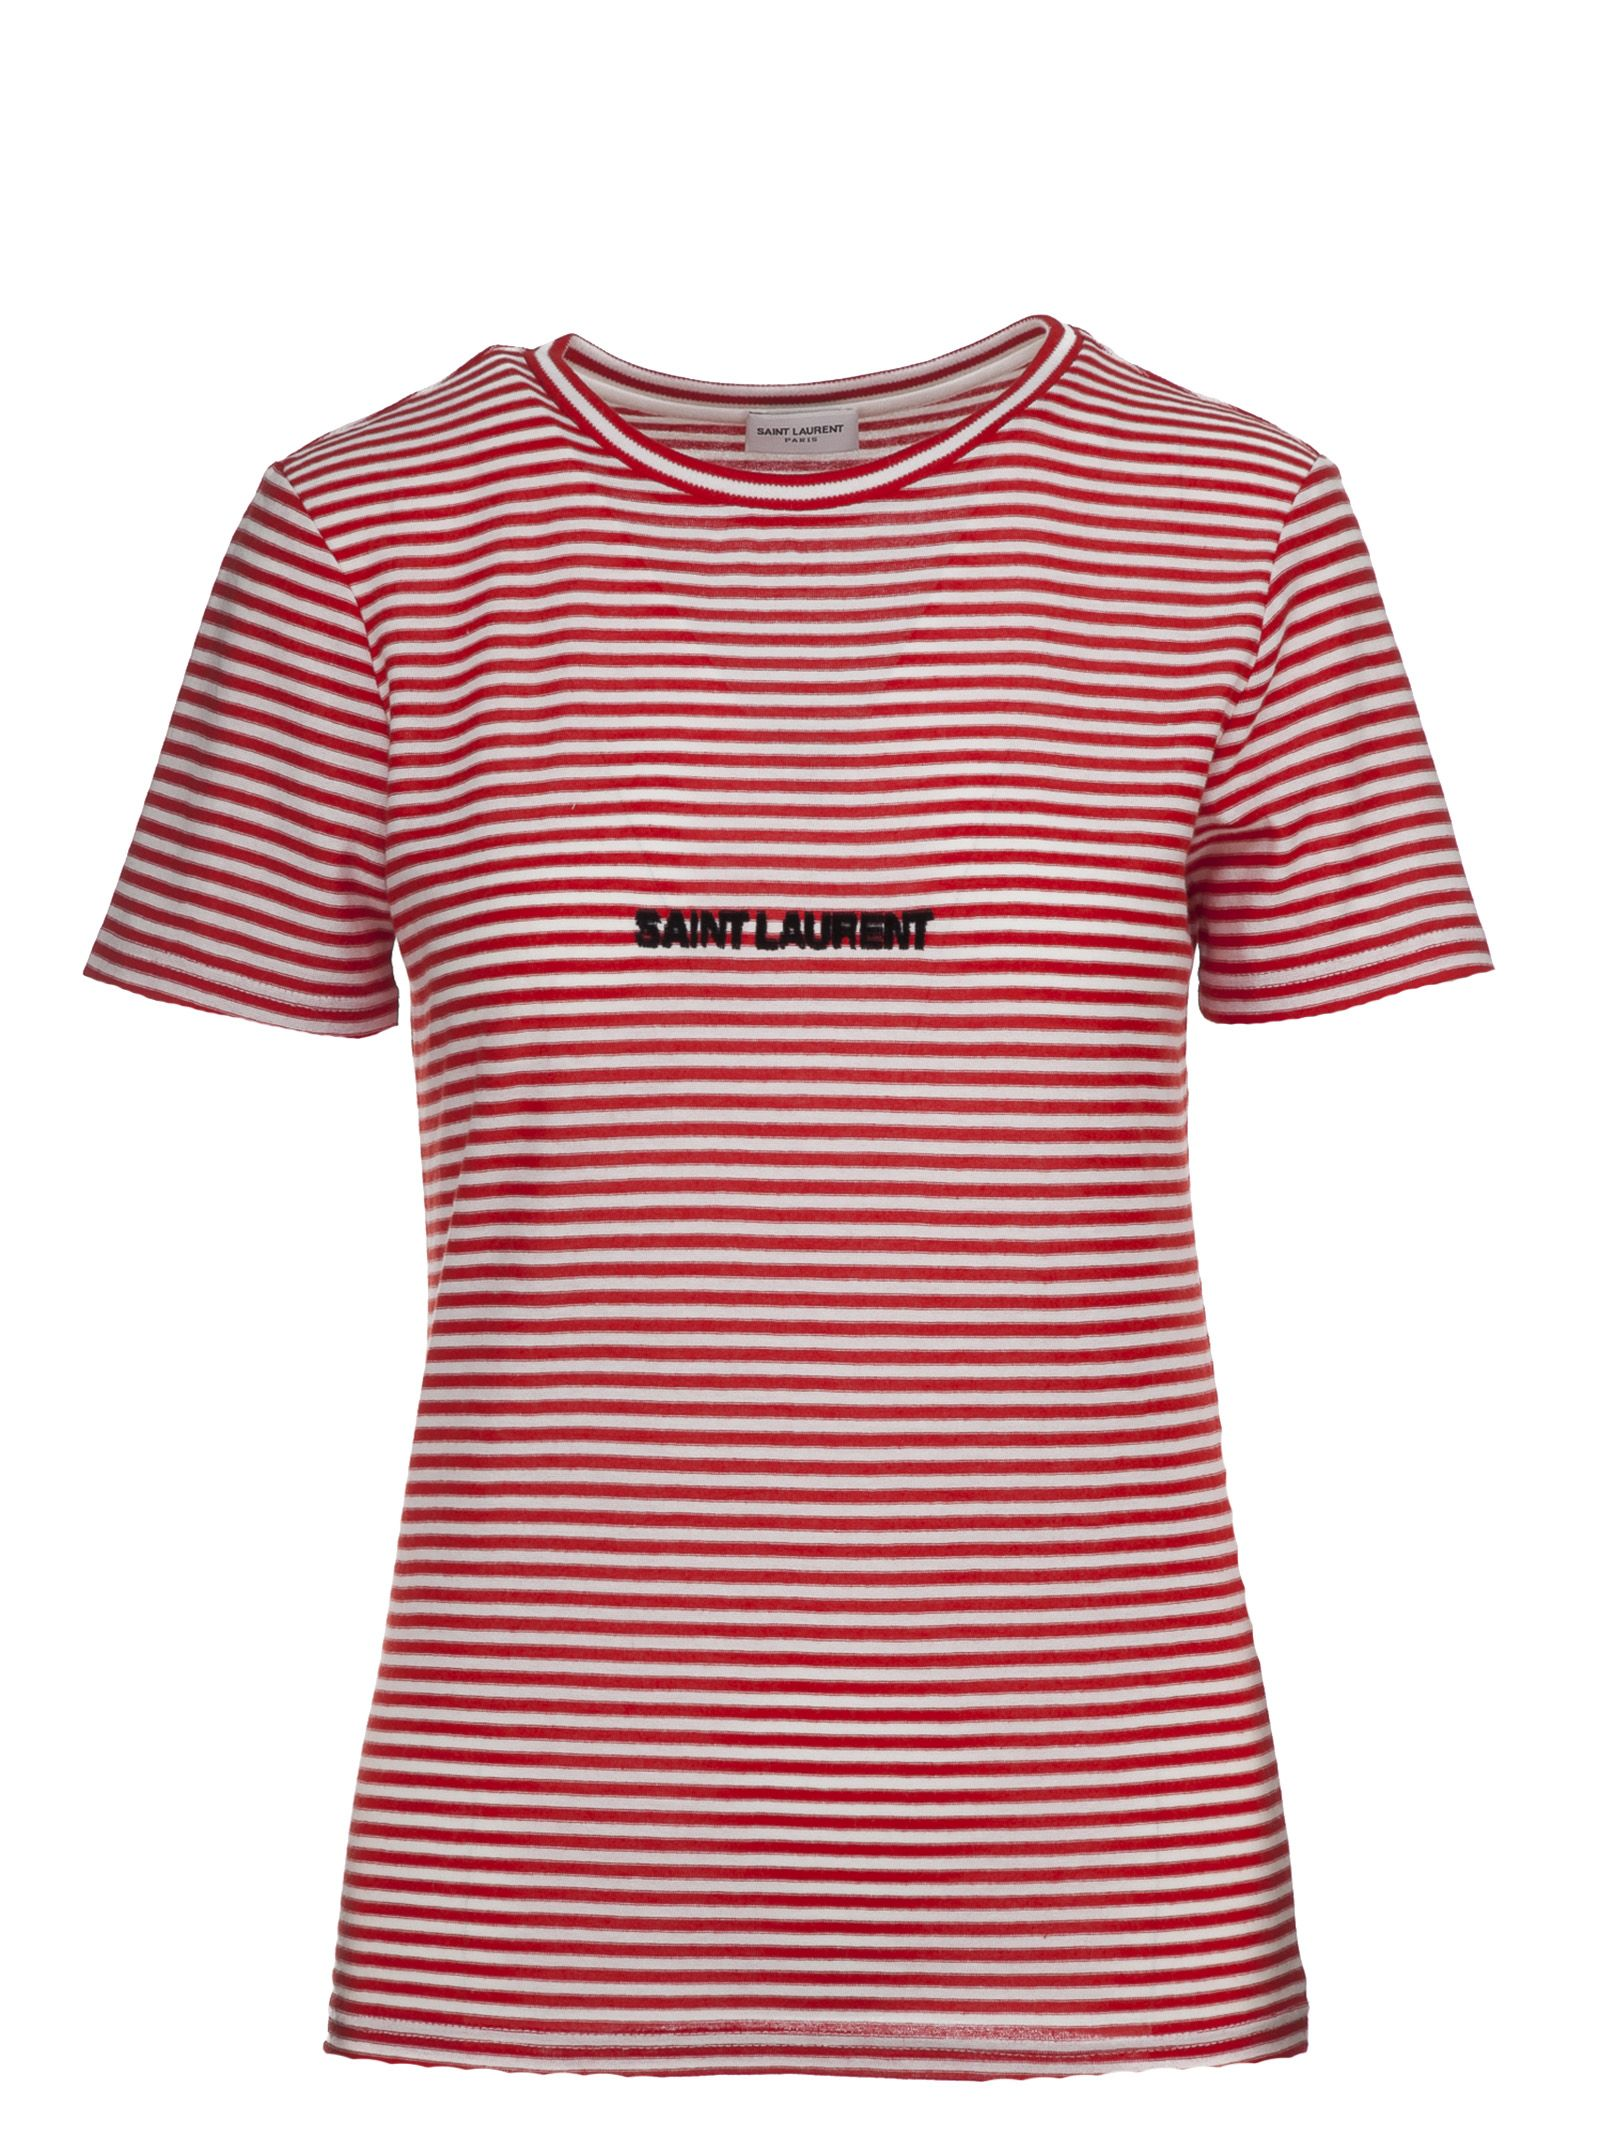 Saint laurent saint laurent logo embroidered striped t for Shirt with logo embroidered